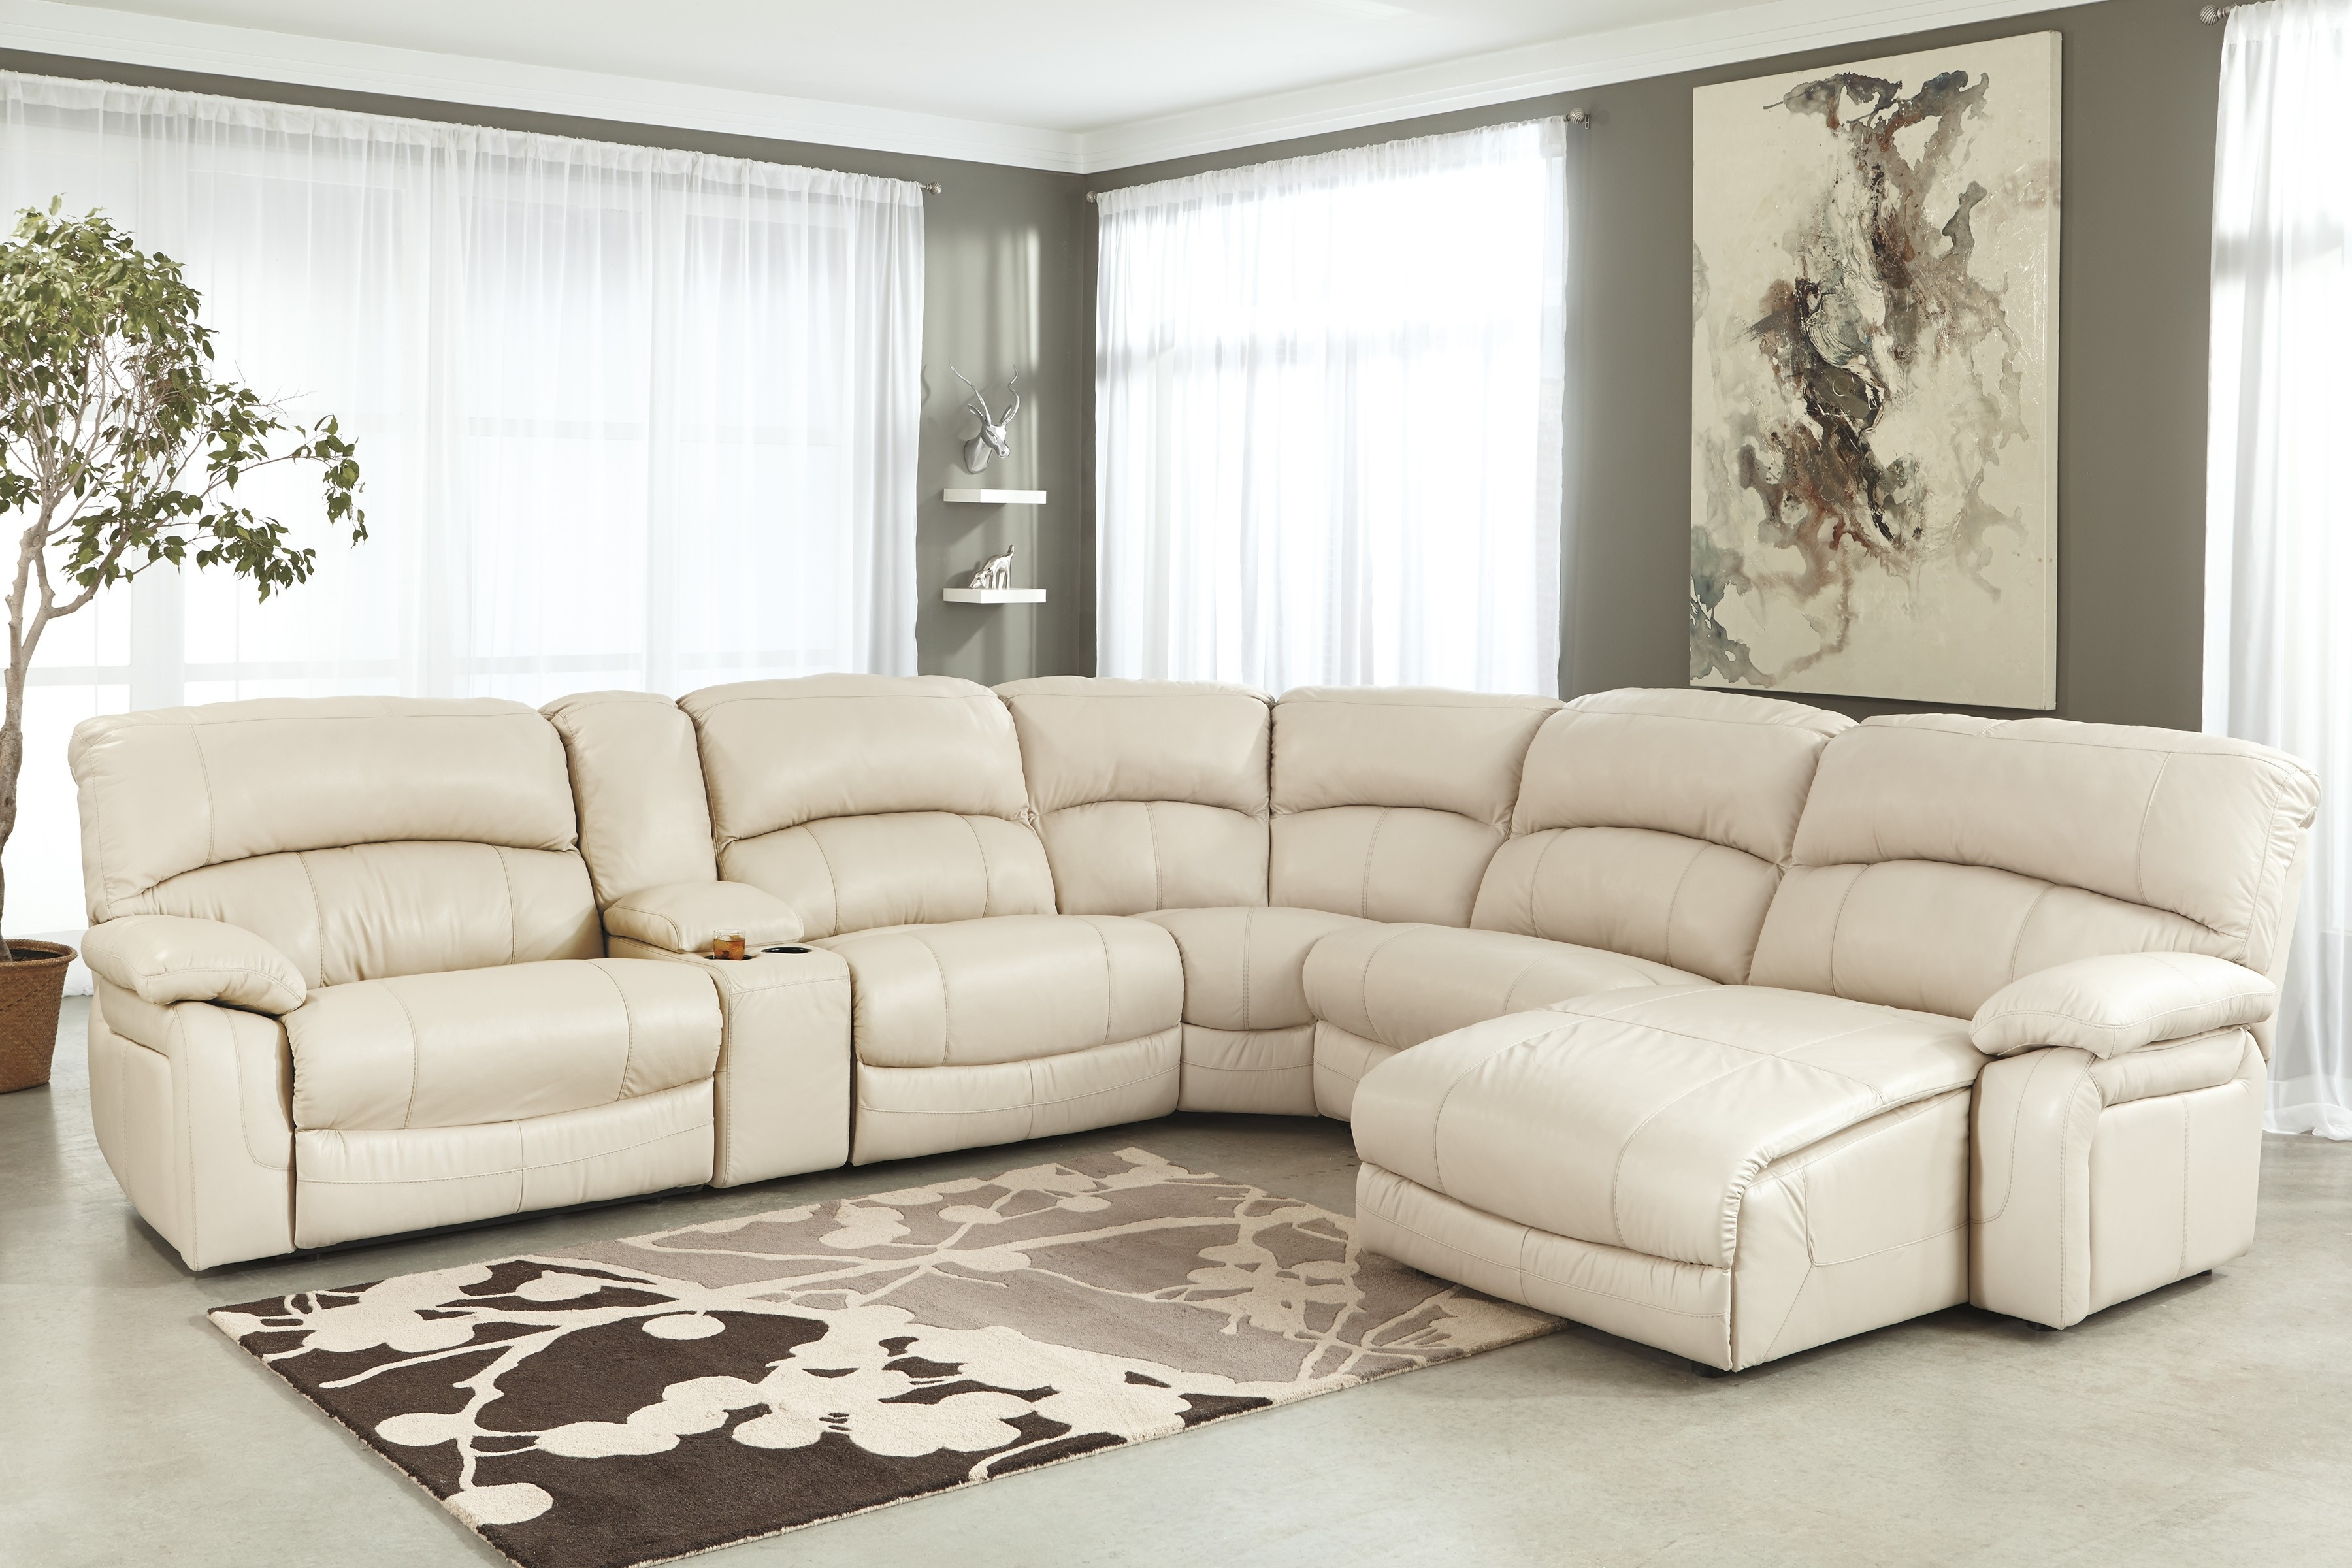 Grey Half Couch 10 Best Collection Of U Shaped Leather Sectional Sofas